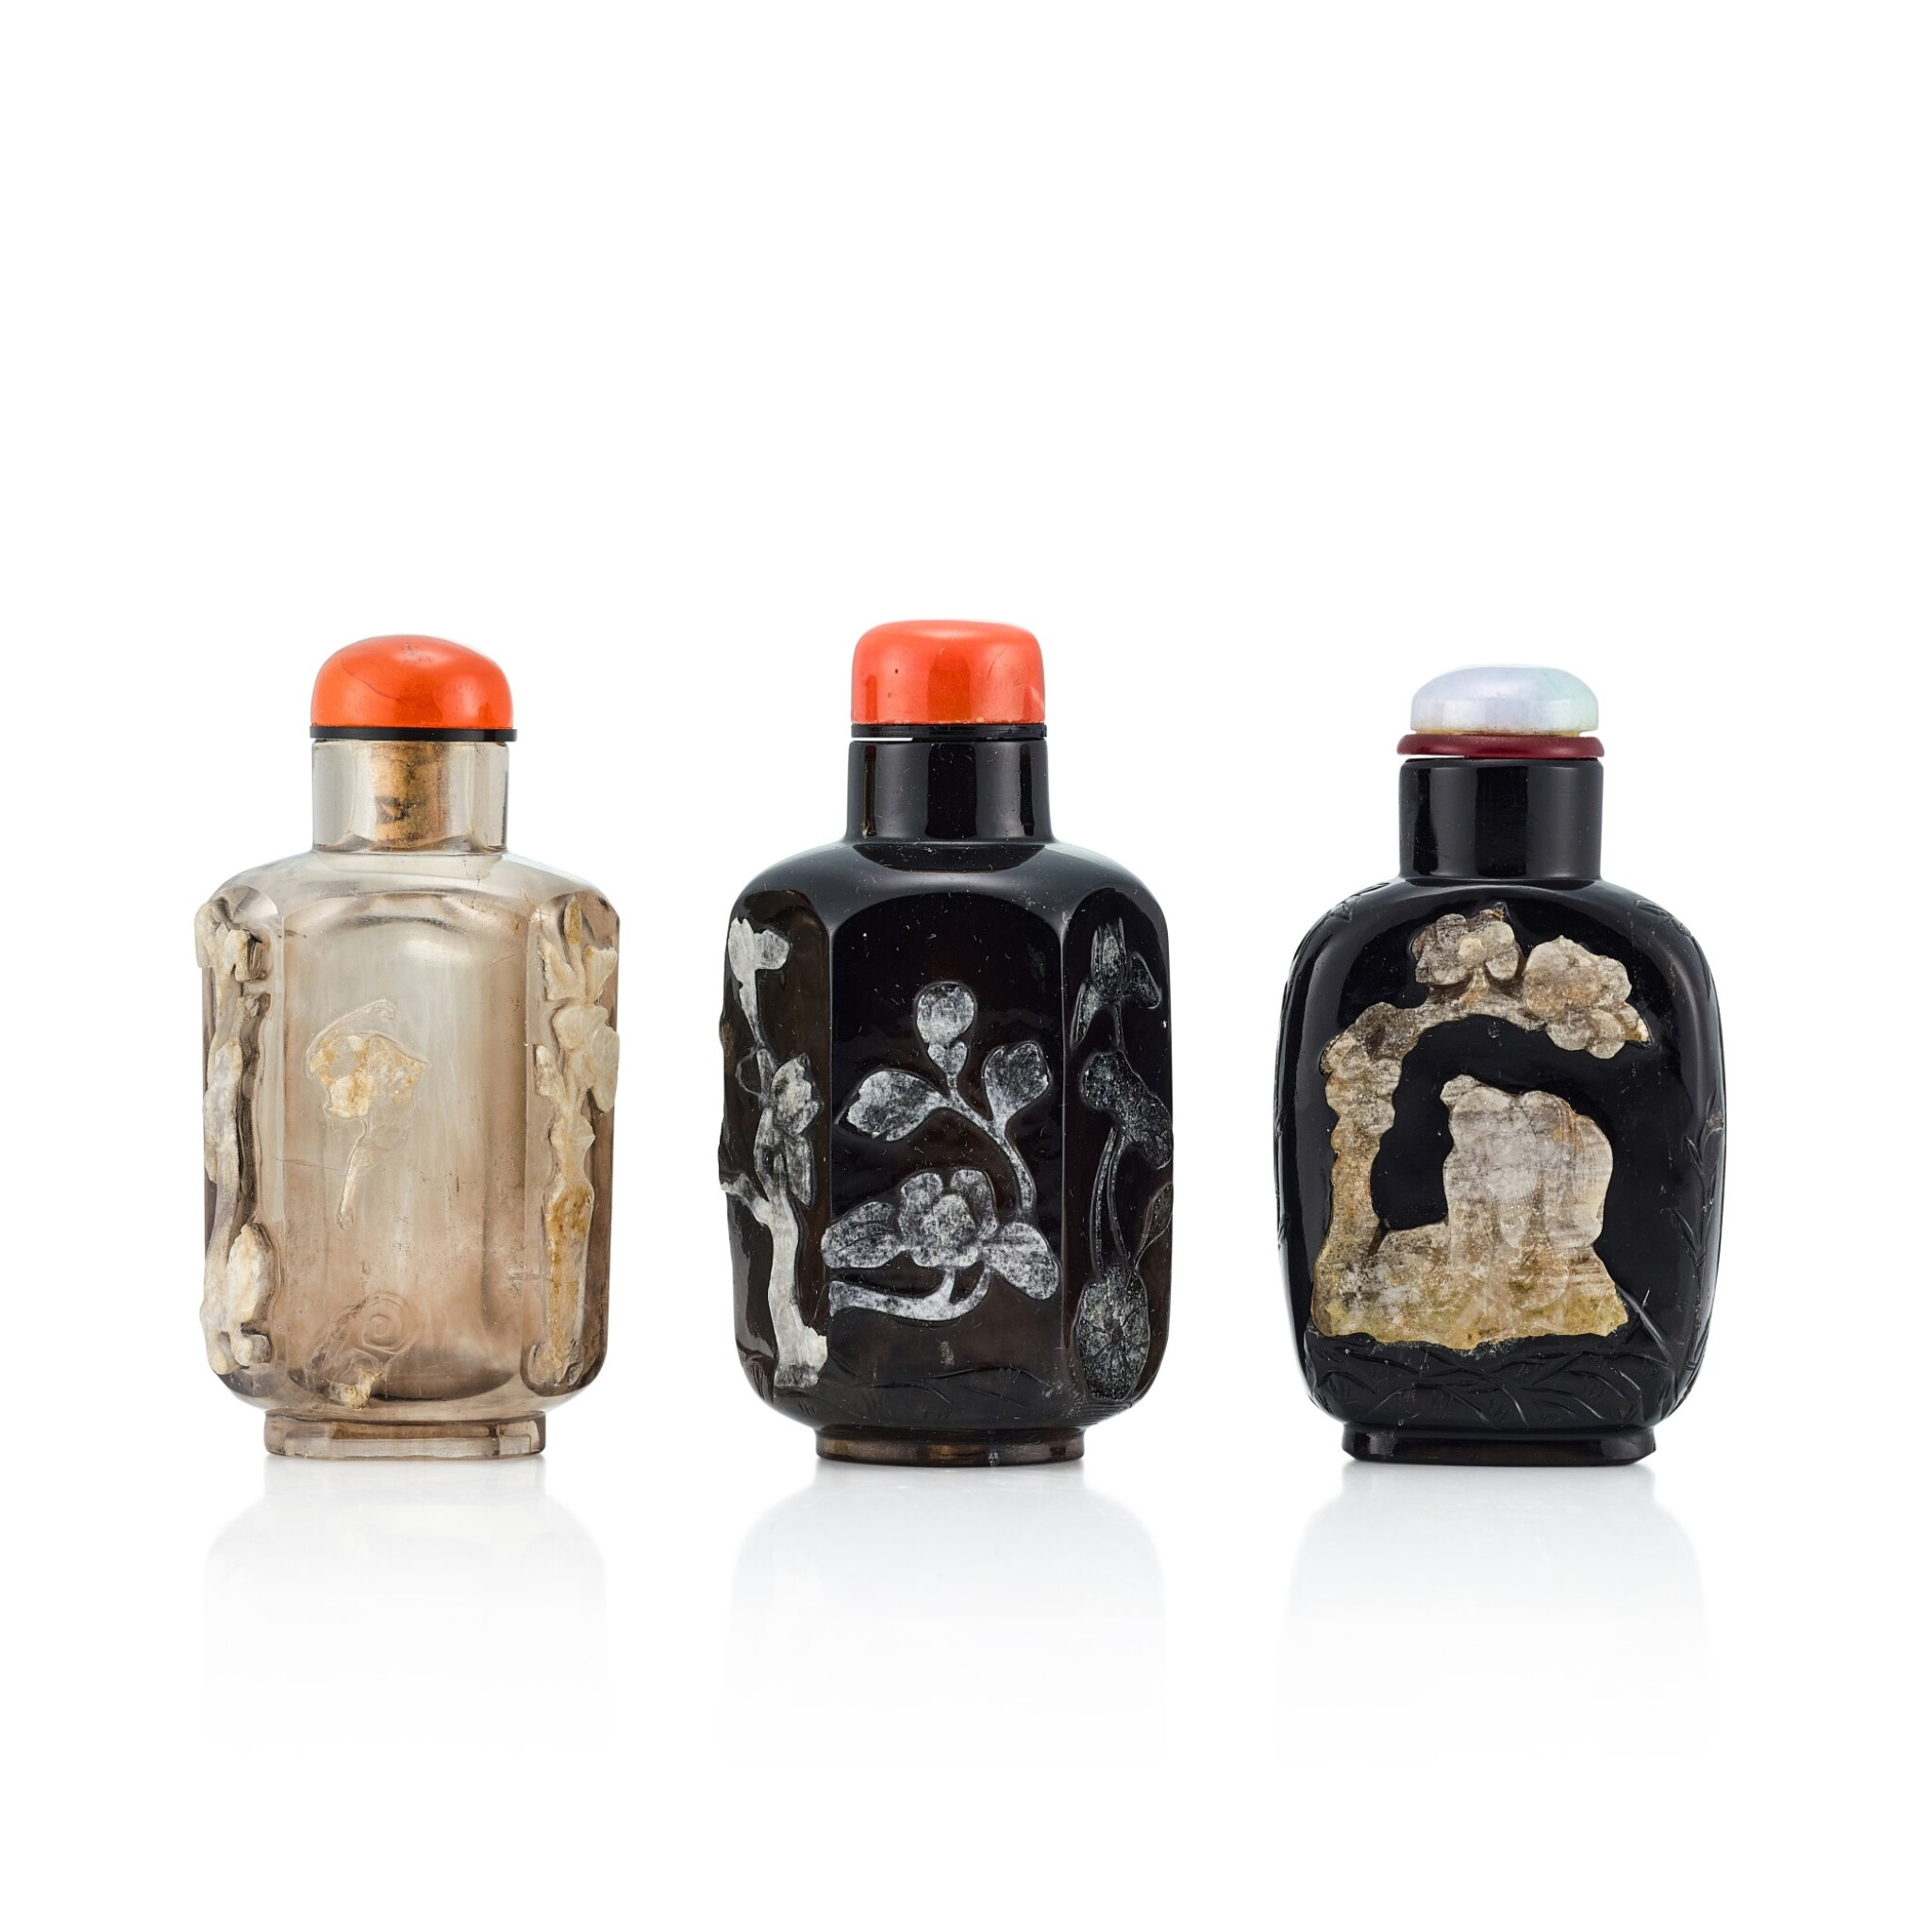 View 1 of Lot 3073. Three Carved Rock-Crystal Snuff Bottles Qing Dynasty, 19th Century | 清十九世紀 水晶巧雕鼻煙壺三件.